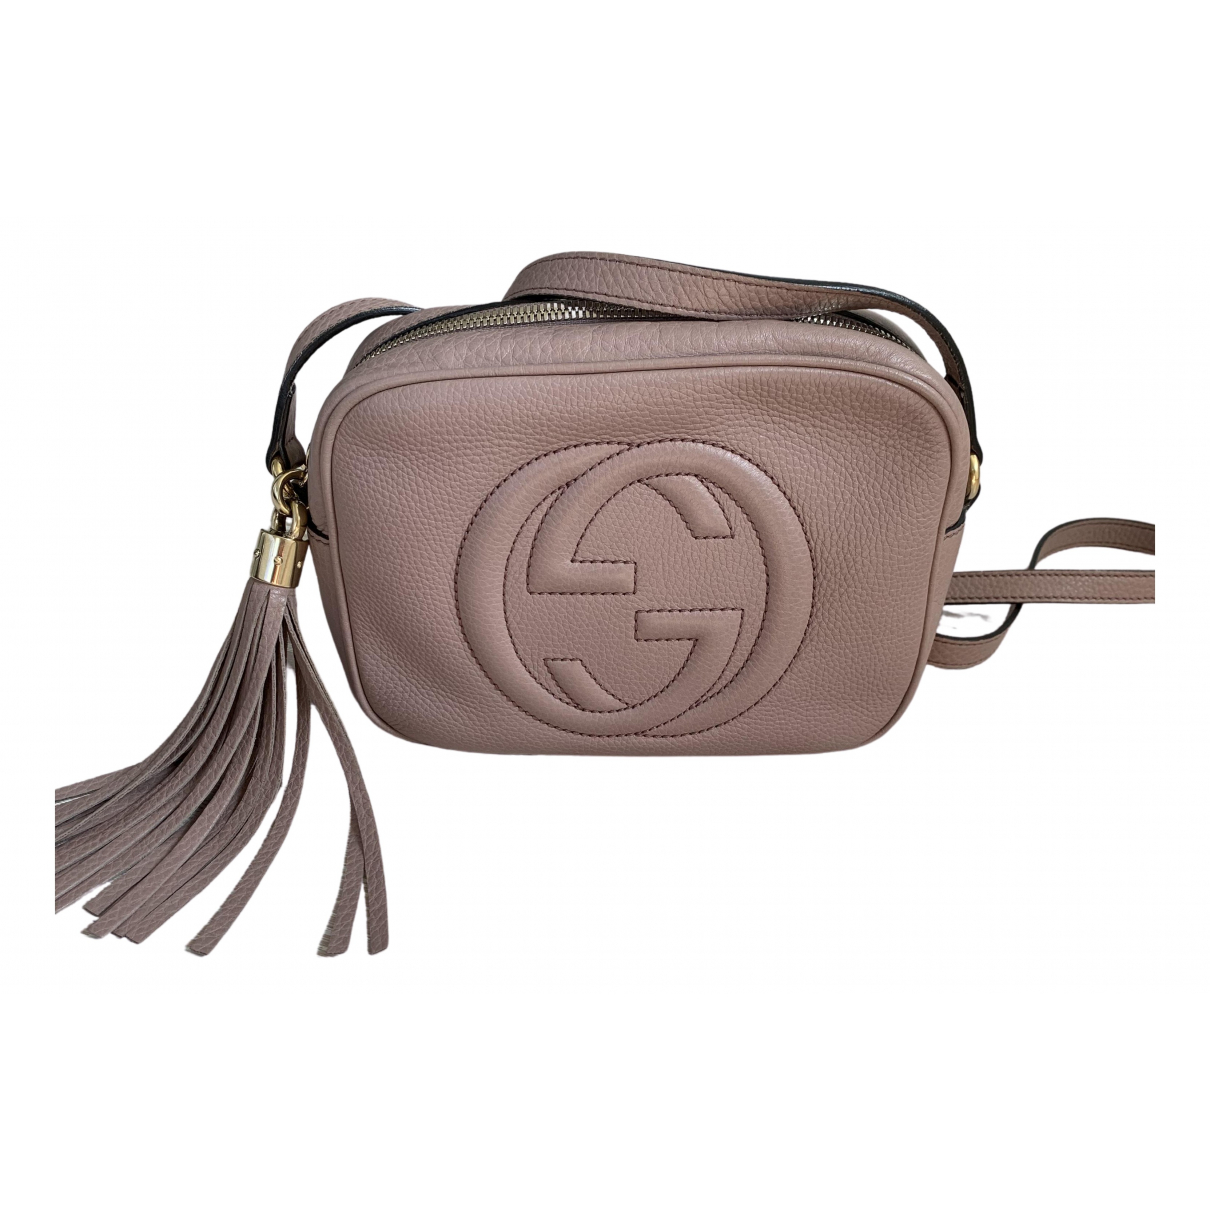 Gucci Soho Pink Leather handbag for Women \N